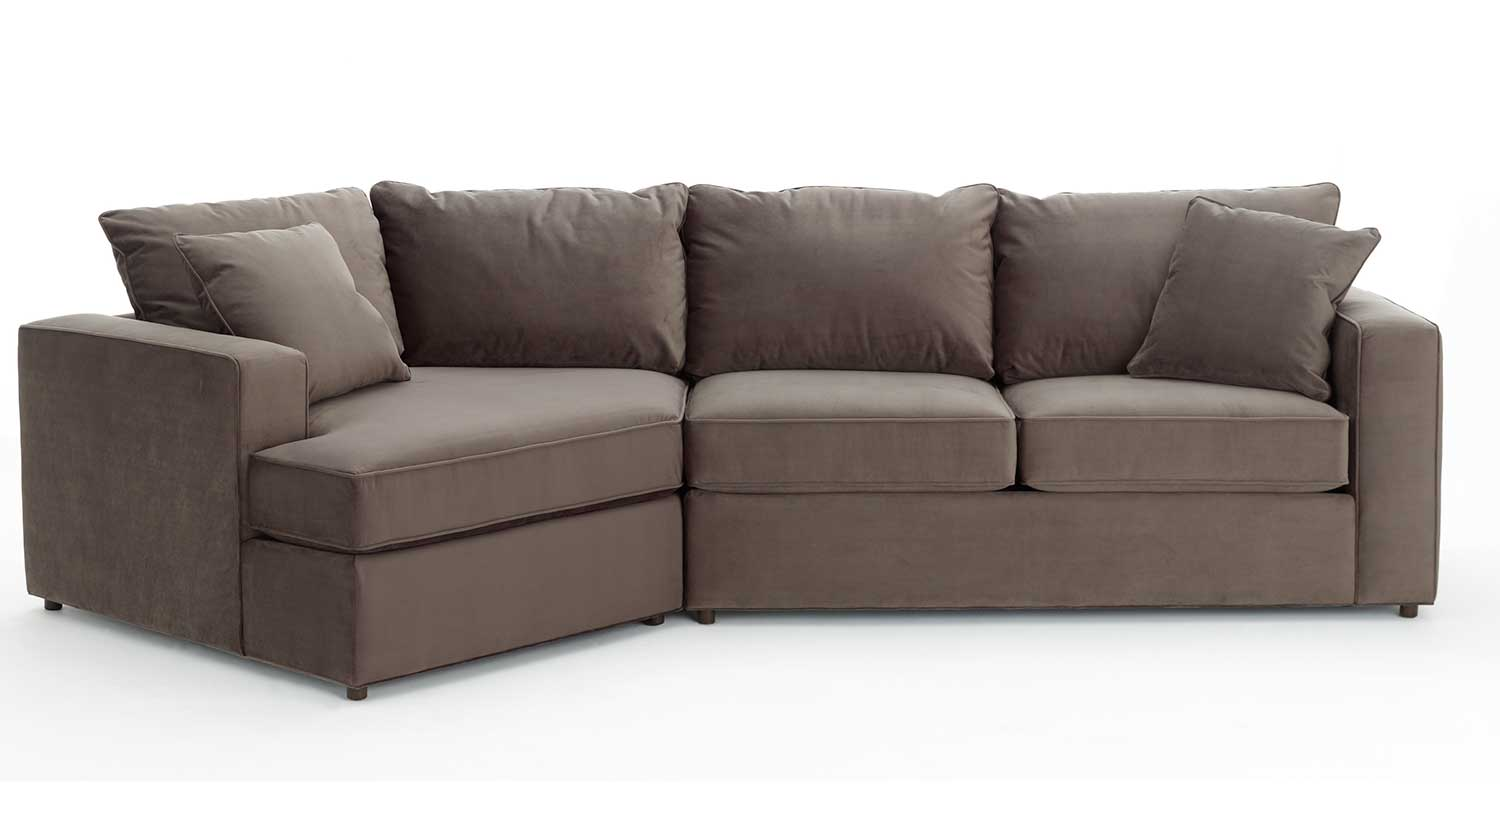 angled sectional sofa oversized leather circle furniture - | living room ...